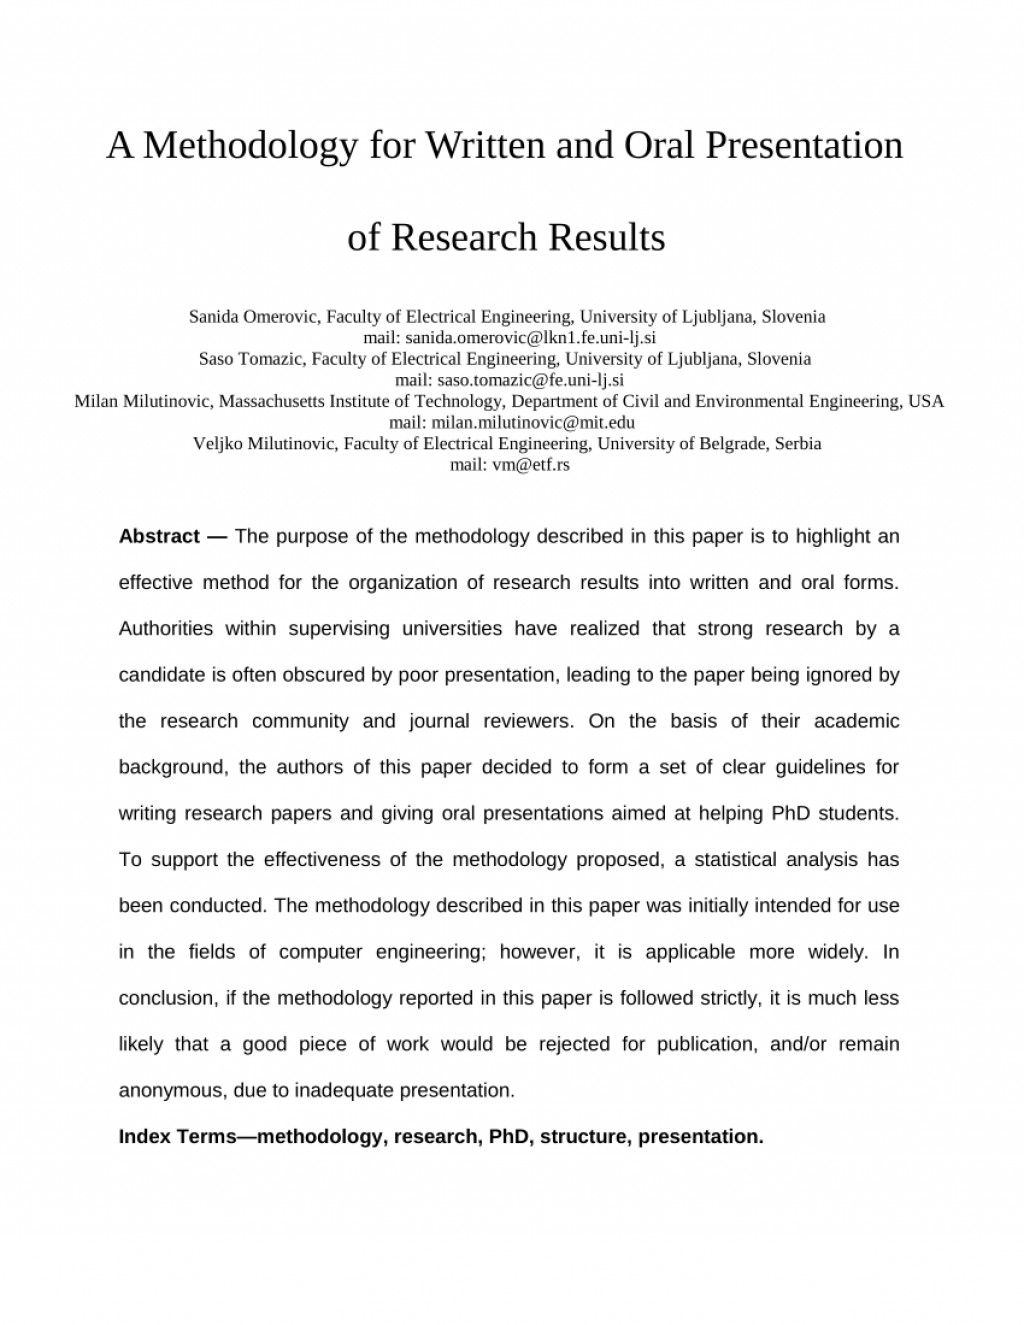 003 Method Used In Research Paper Shocking Materials And Methods Example Procedures Survey Large